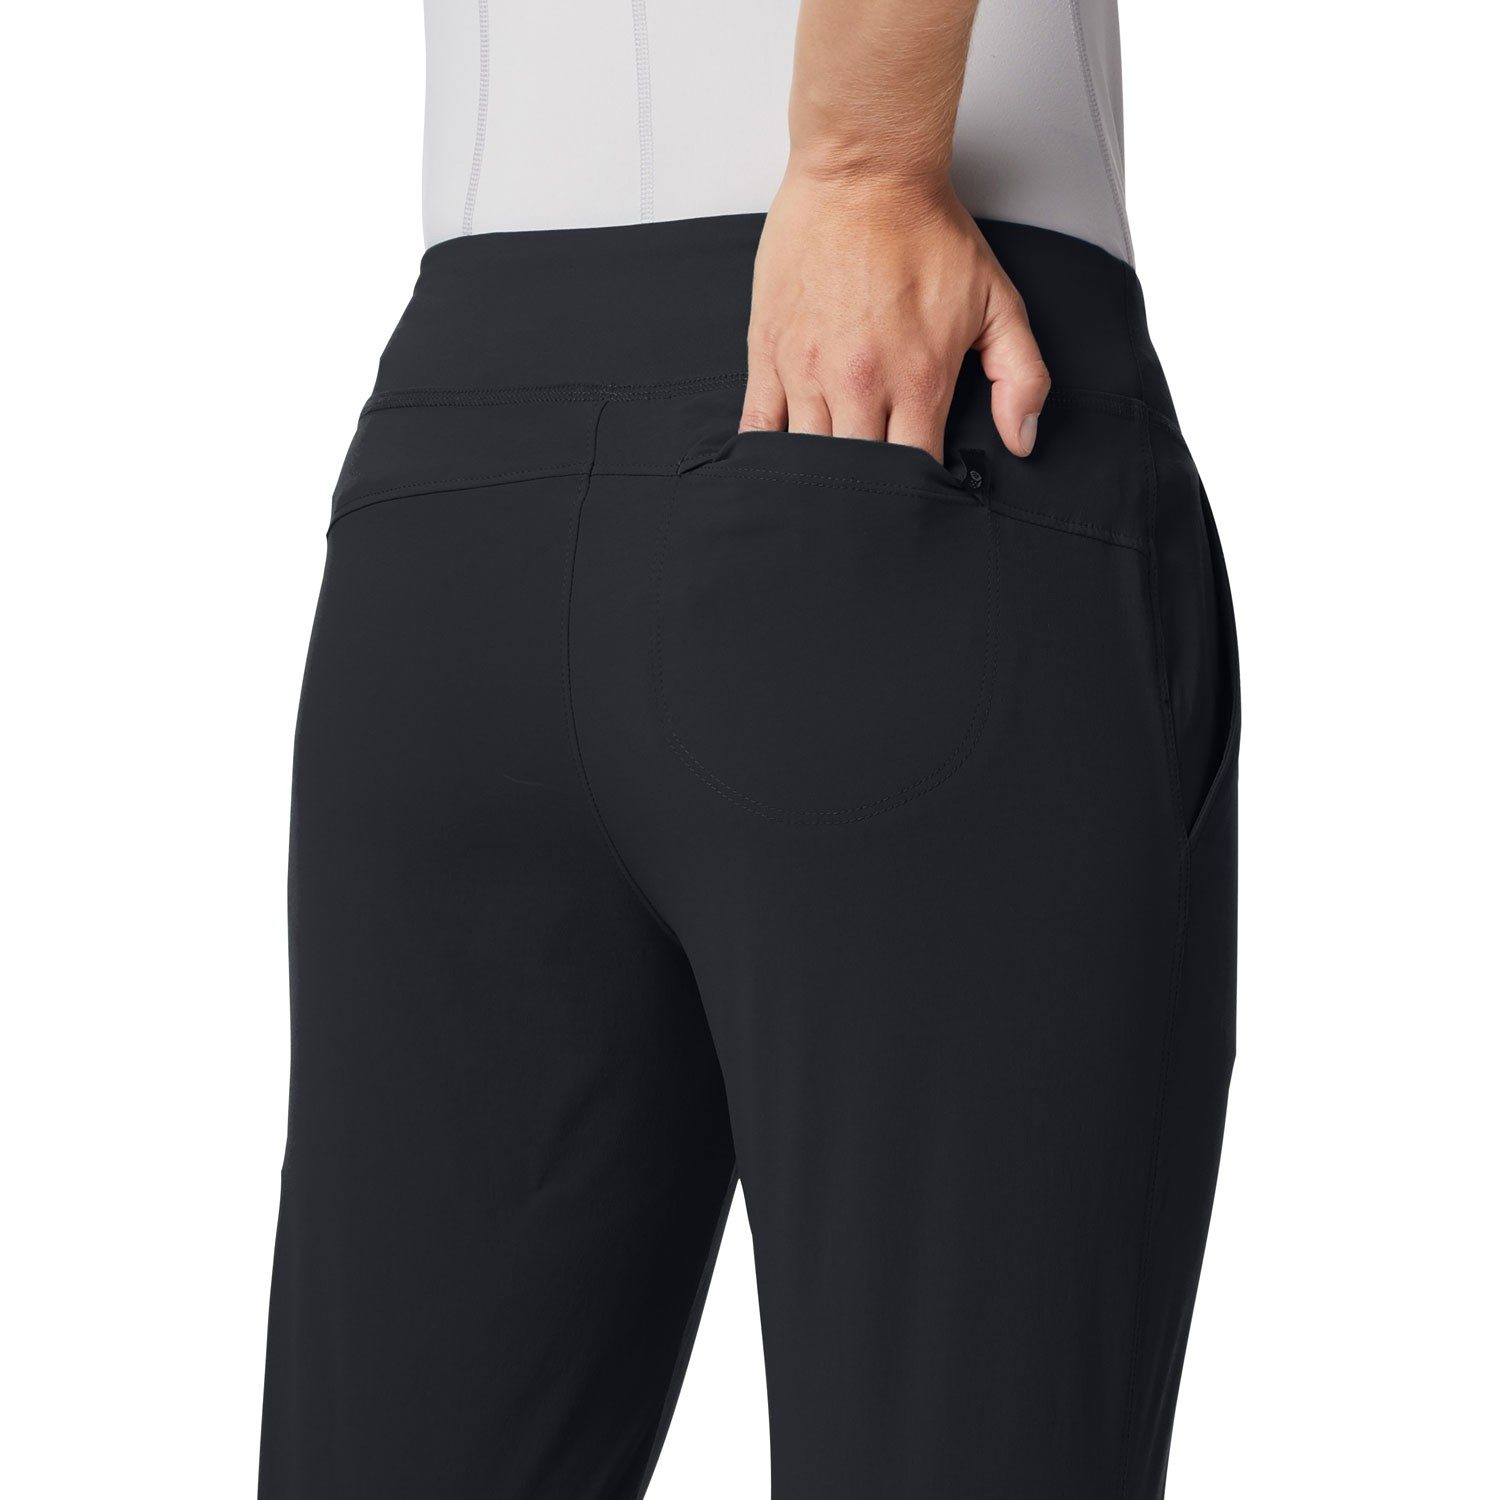 Mountain Hardwear Dynama Pants - Black - model back pocket